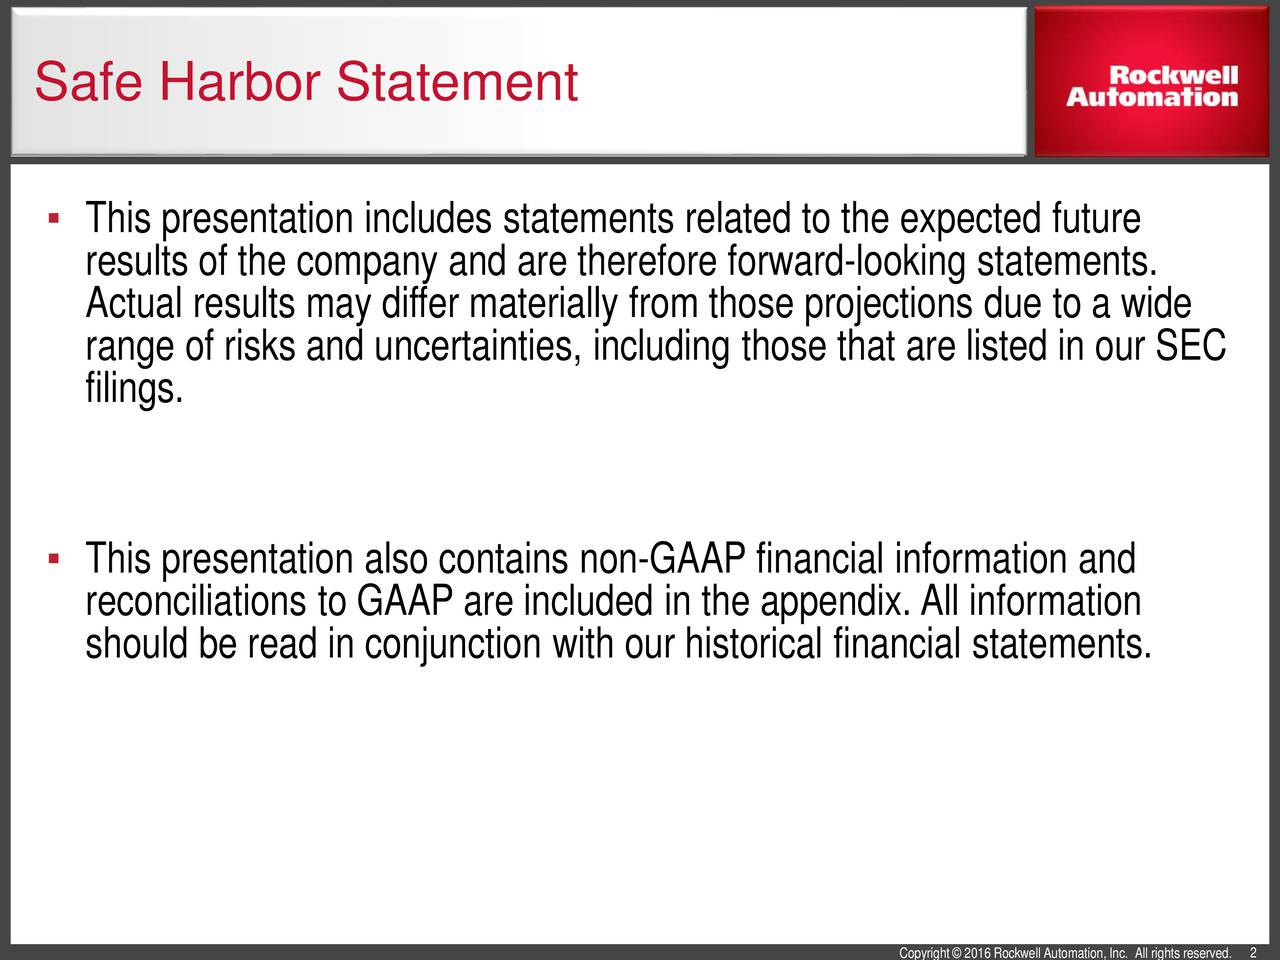 This presentation includes statements related to the expected future results of the company and are therefore forward-looking statements. Actual results may differ materially from those projections due to a wide range of risks and uncertainties, including those that are listed in our SEC filings. This presentation also contains non-GAAP financial information and reconciliations to GAAP are included in the appendix. All information should be read in conjunction with our historical financial statements.